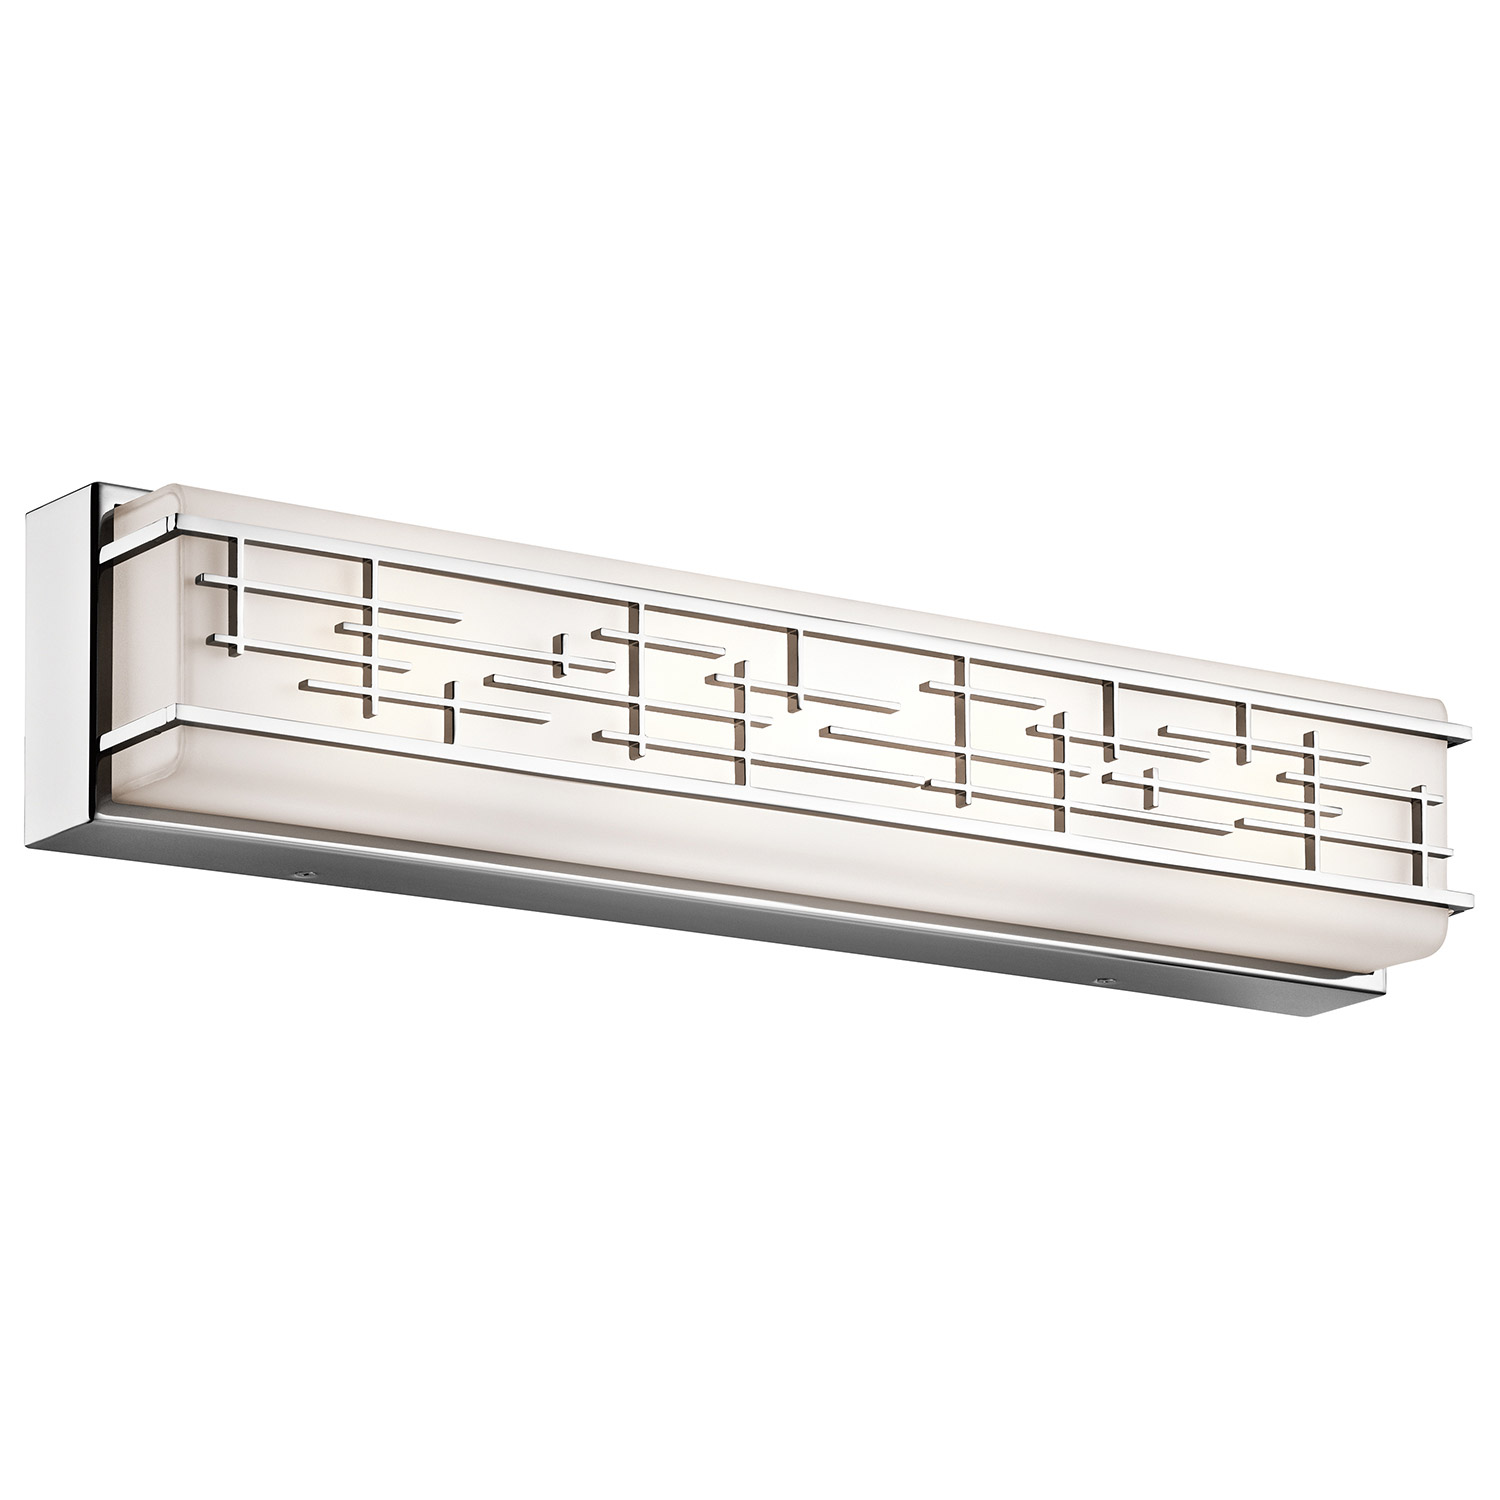 Kichler 45830CHLED Zolon LED Vanity Light